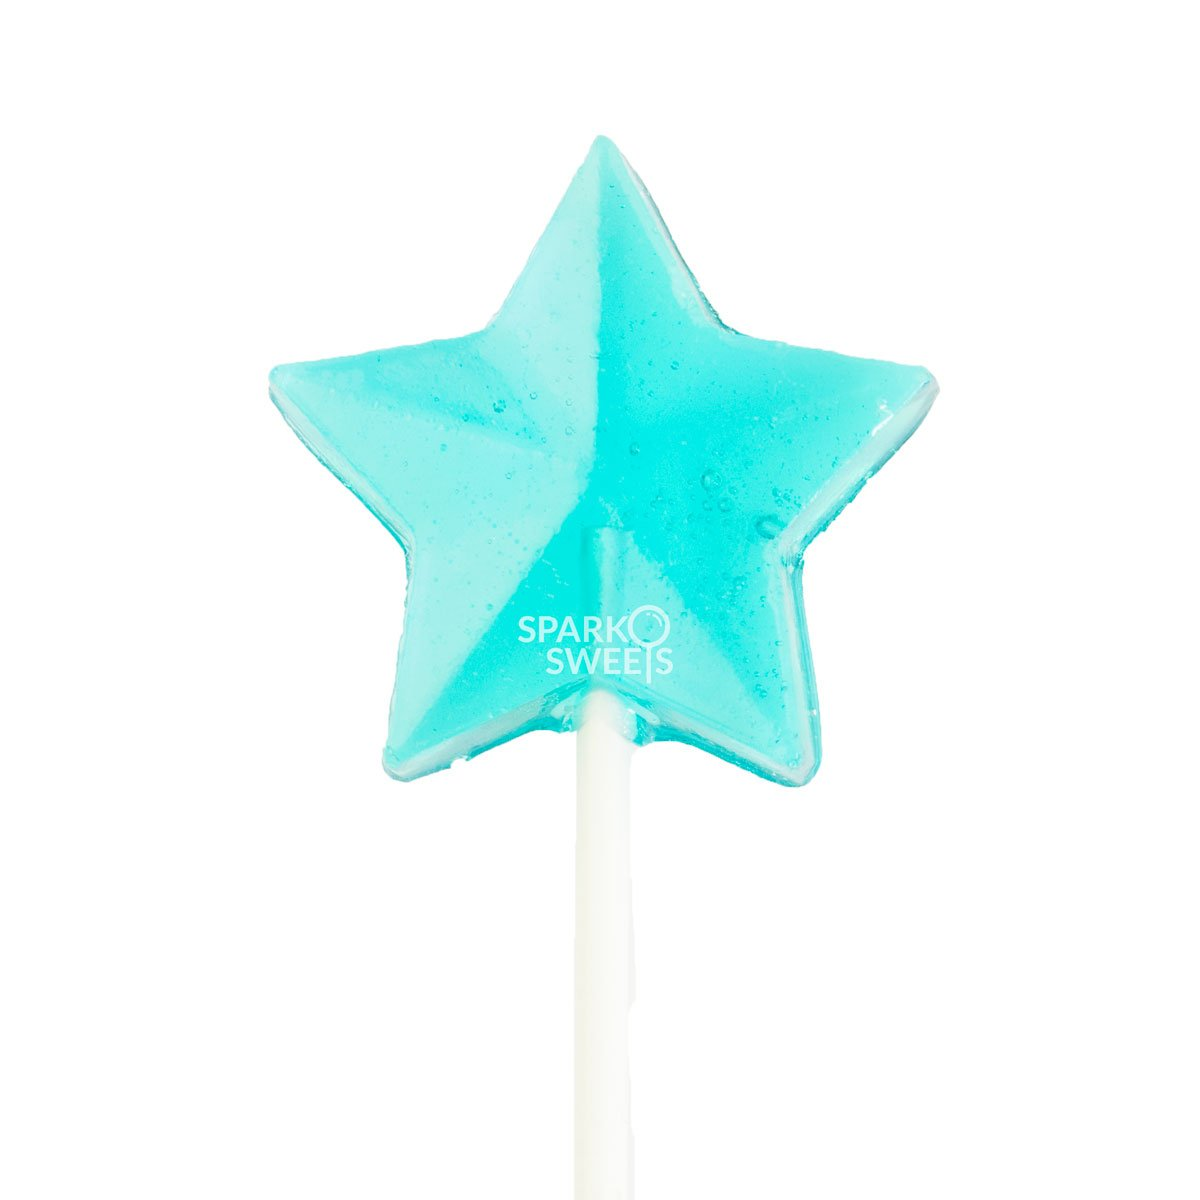 """Sparko Sweets Baby Blue Star Lollipops, Blue Raspberry Flavor, 2"""" Lollipop, Handcrafted in USA, 24 Pieces, 1.5 lbs."""